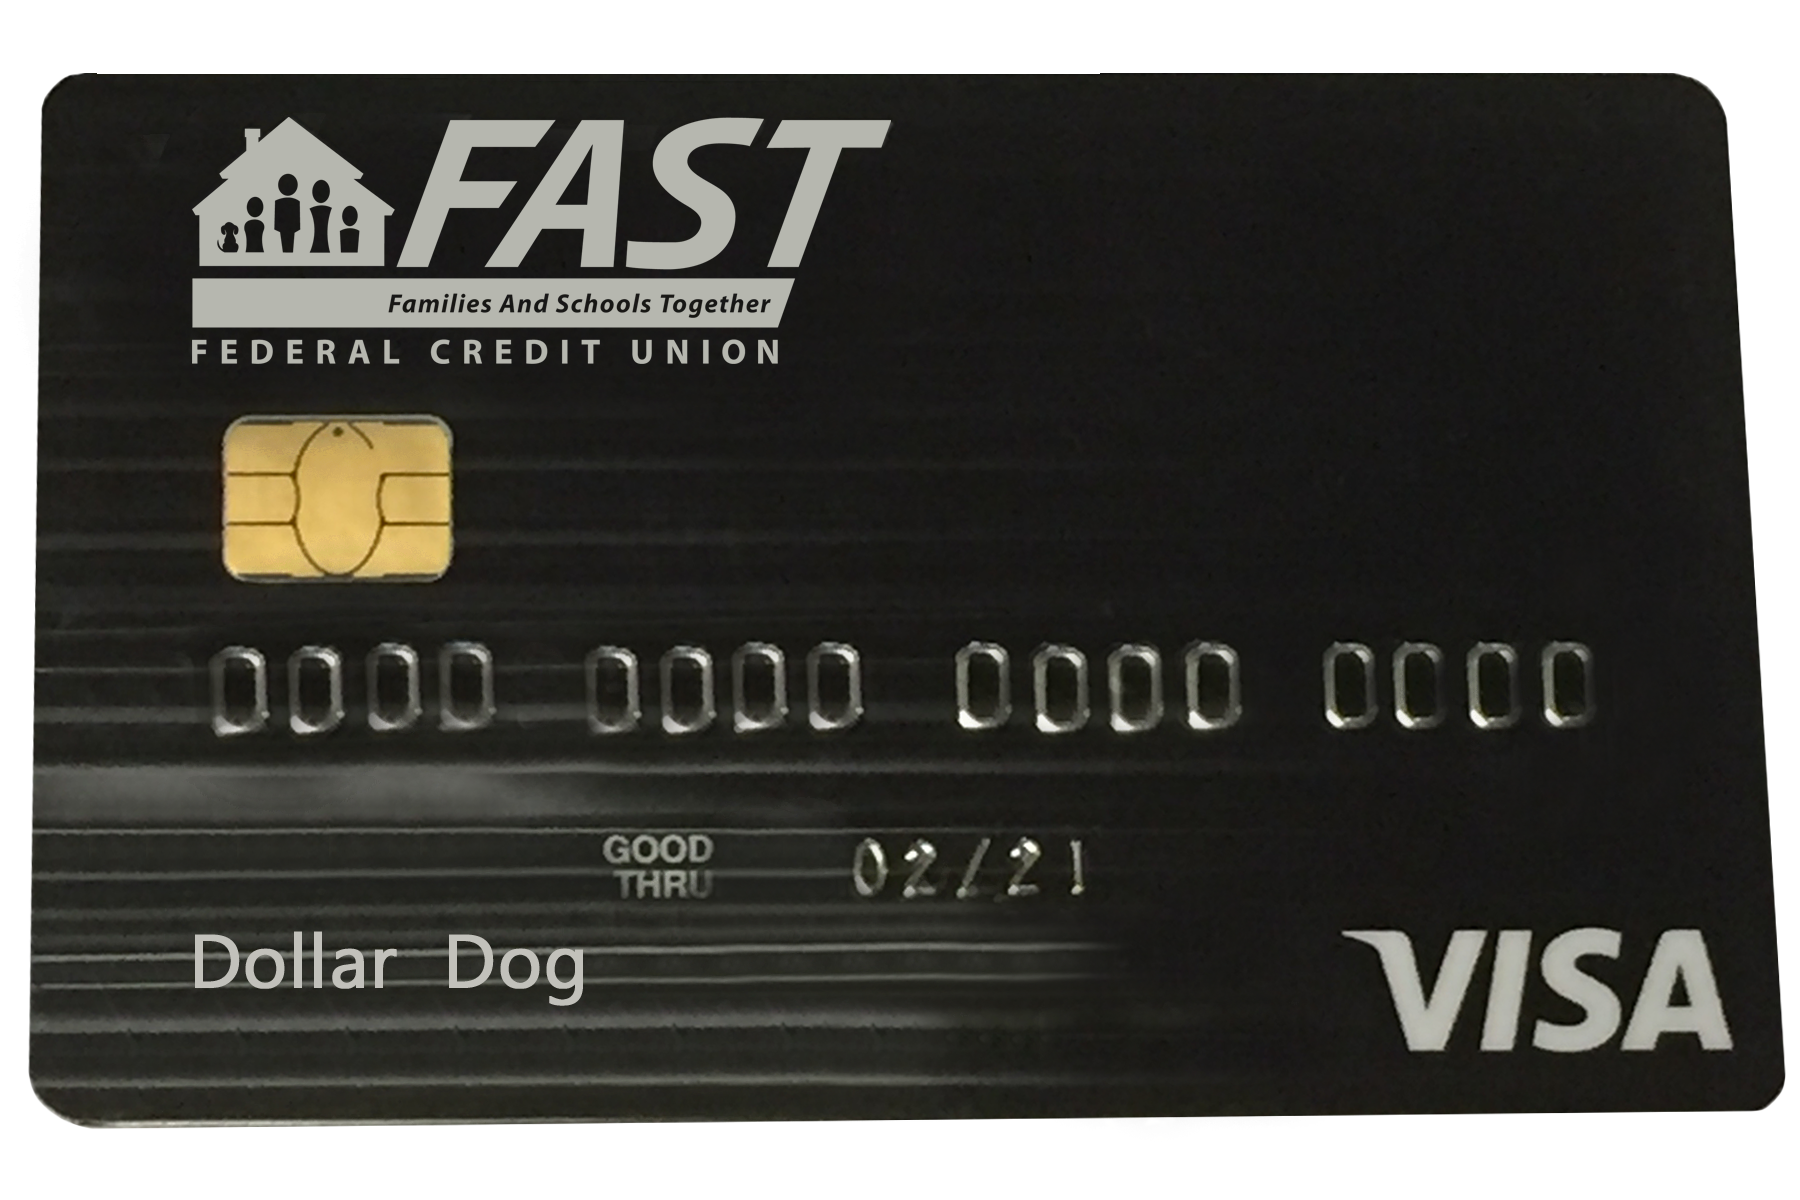 FAST Visa Chip Credit Card is now available. The new chip card makes each transaction safer and more secure. Each time your new chip debit or credit card is used at a chip-terminal, a unique one-time code is generated that is used to approve the transaction. This feature makes it virtually impossible to duplicate counterfeit cards. The chip also helps to secure your personal information, with the chip only generating the unqiue code and not sending any personal data to the retailer.